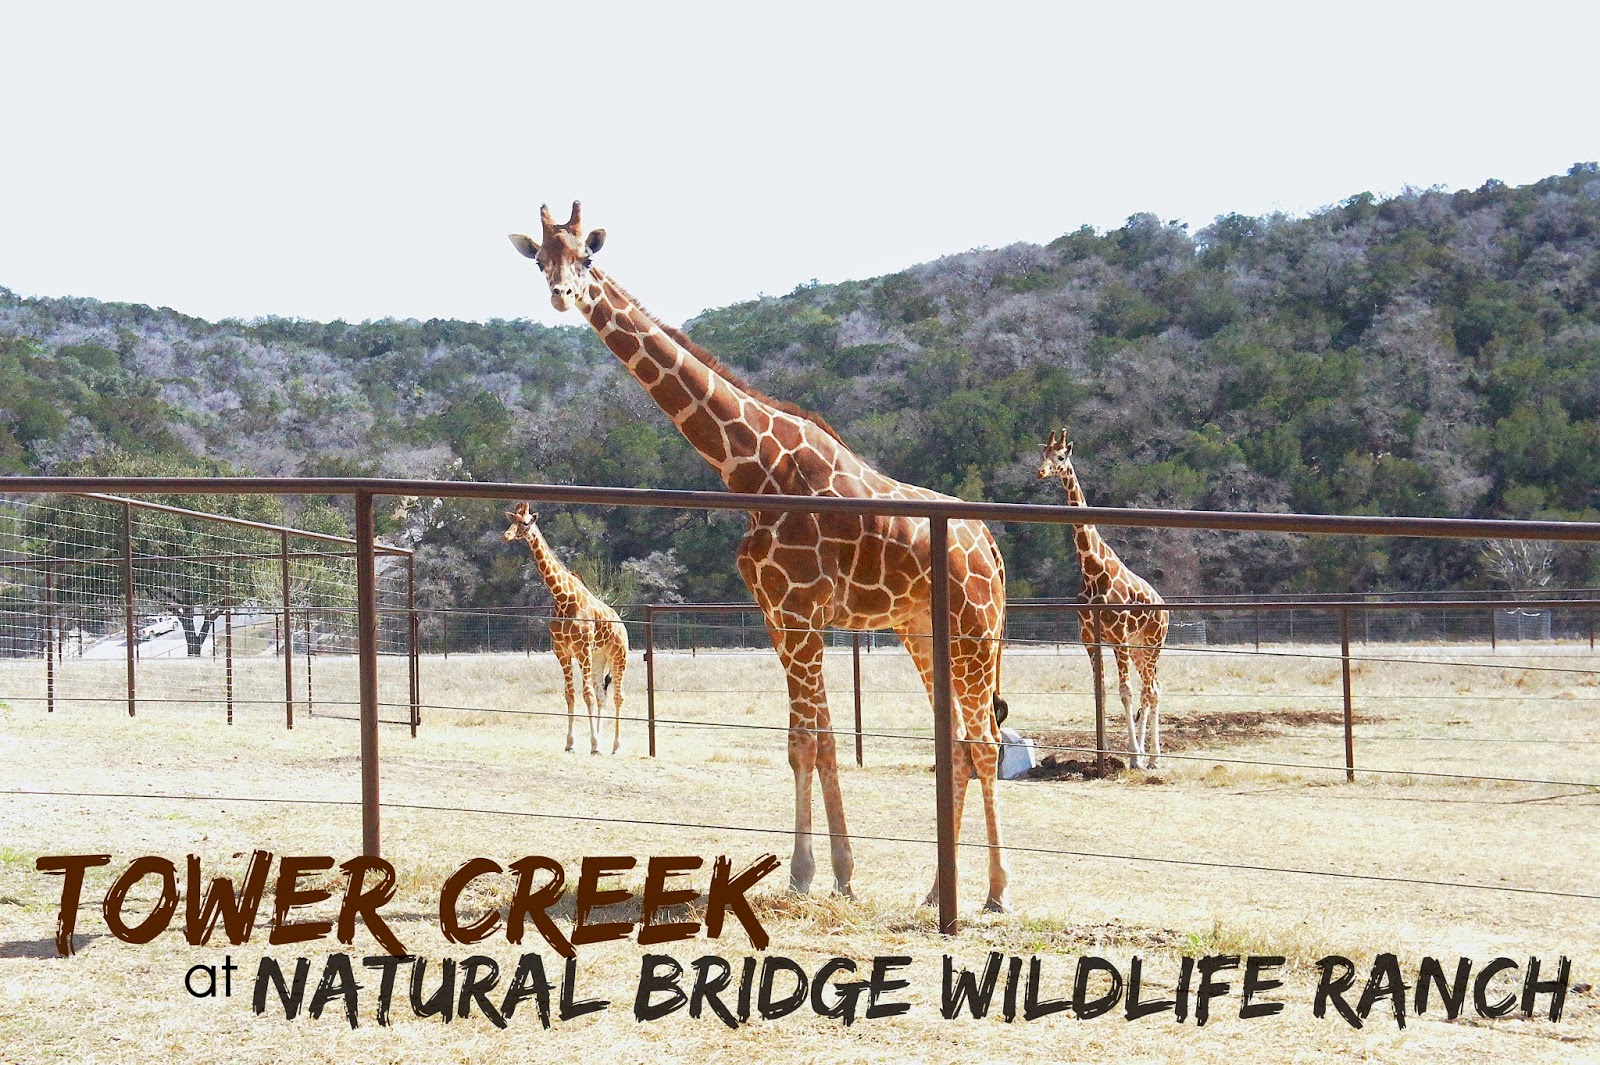 New! Tower Creek at the Natural Bridge Wildlife Ranch